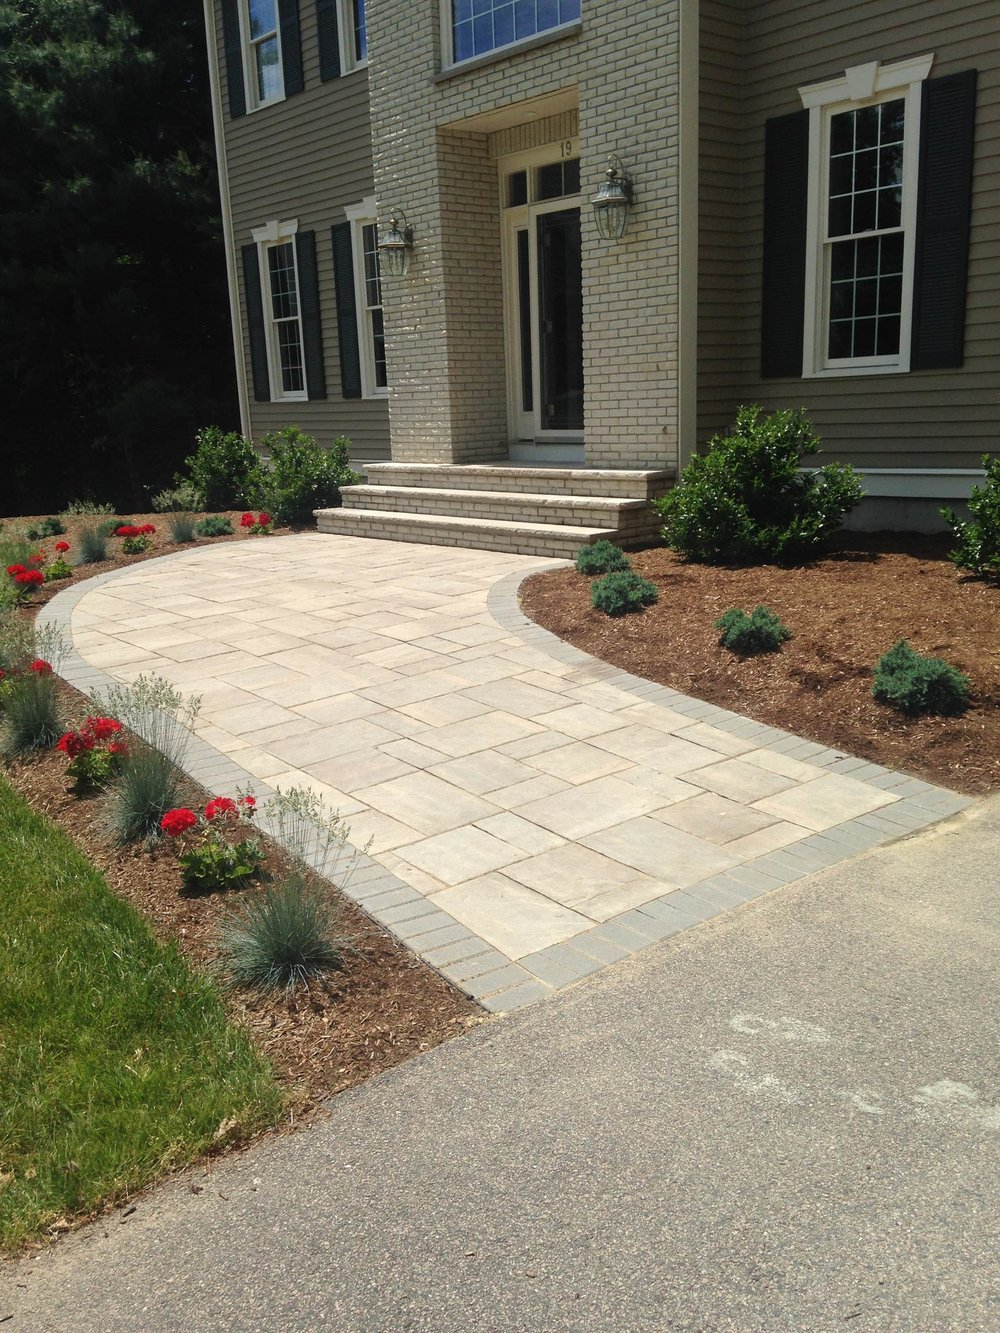 Professional walkway and patio installation in Weston Massachusetts